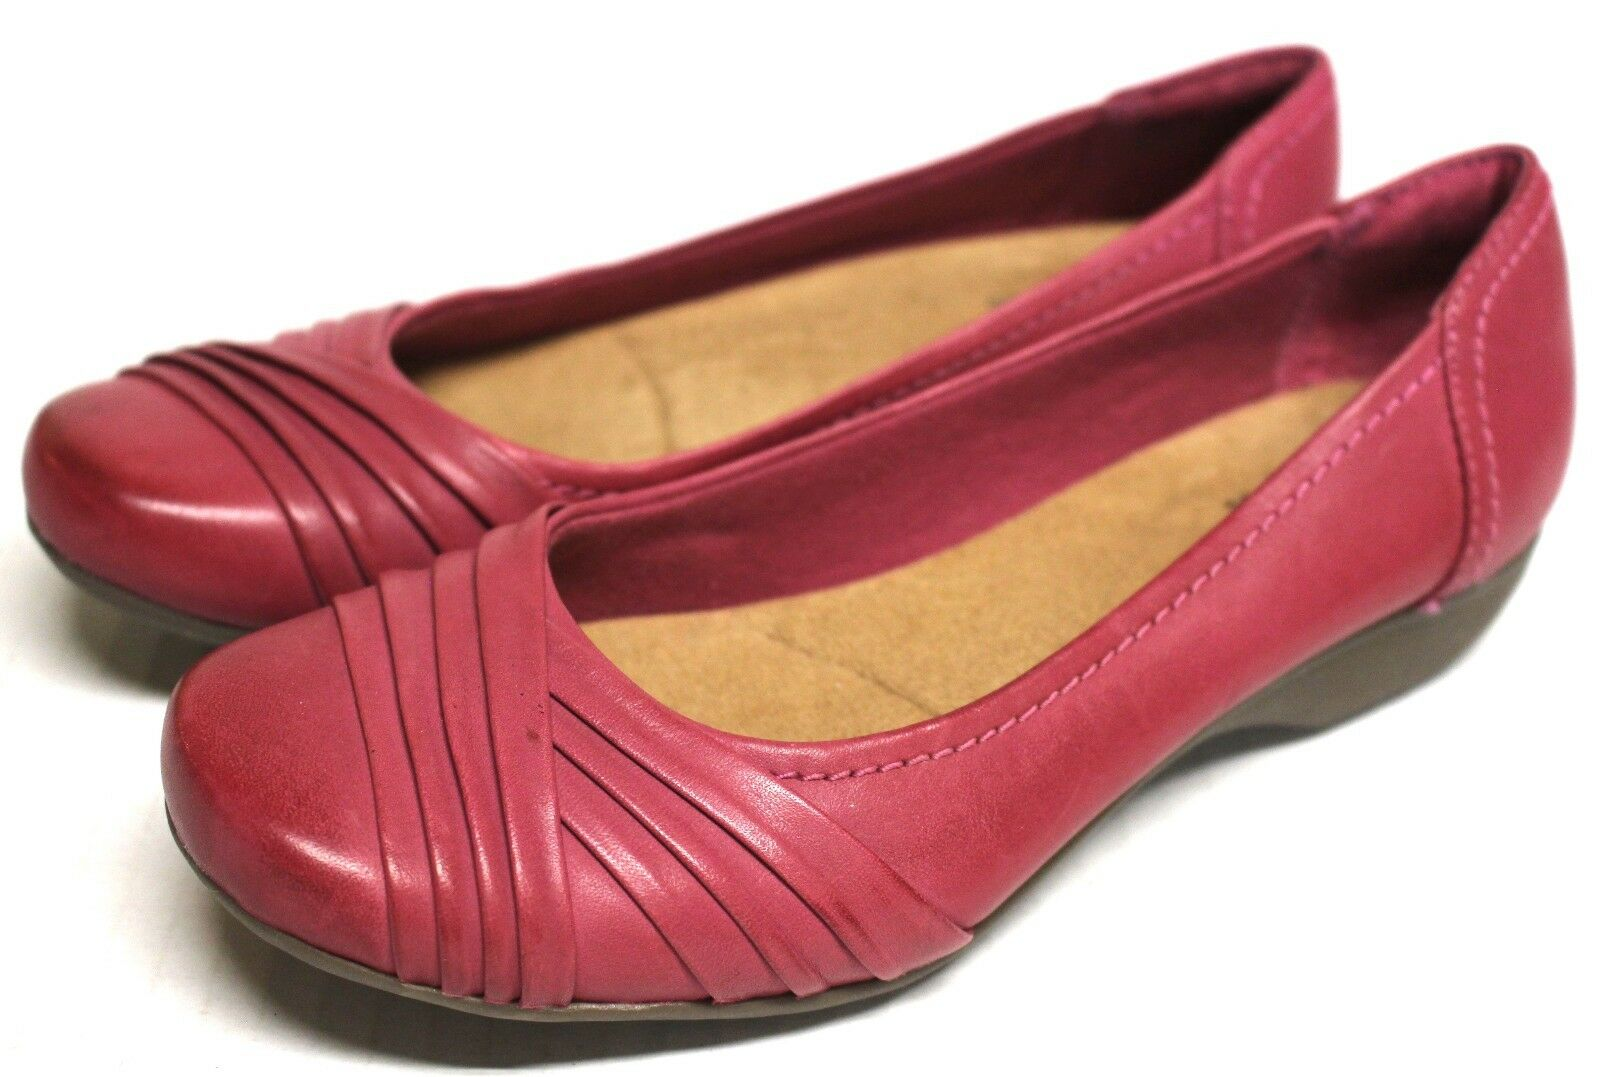 New Clarks 1786 Women 6.5M Pink $95 Shoes Flat Loafers Leather Slip On Pink 6.5M Bendables 935985